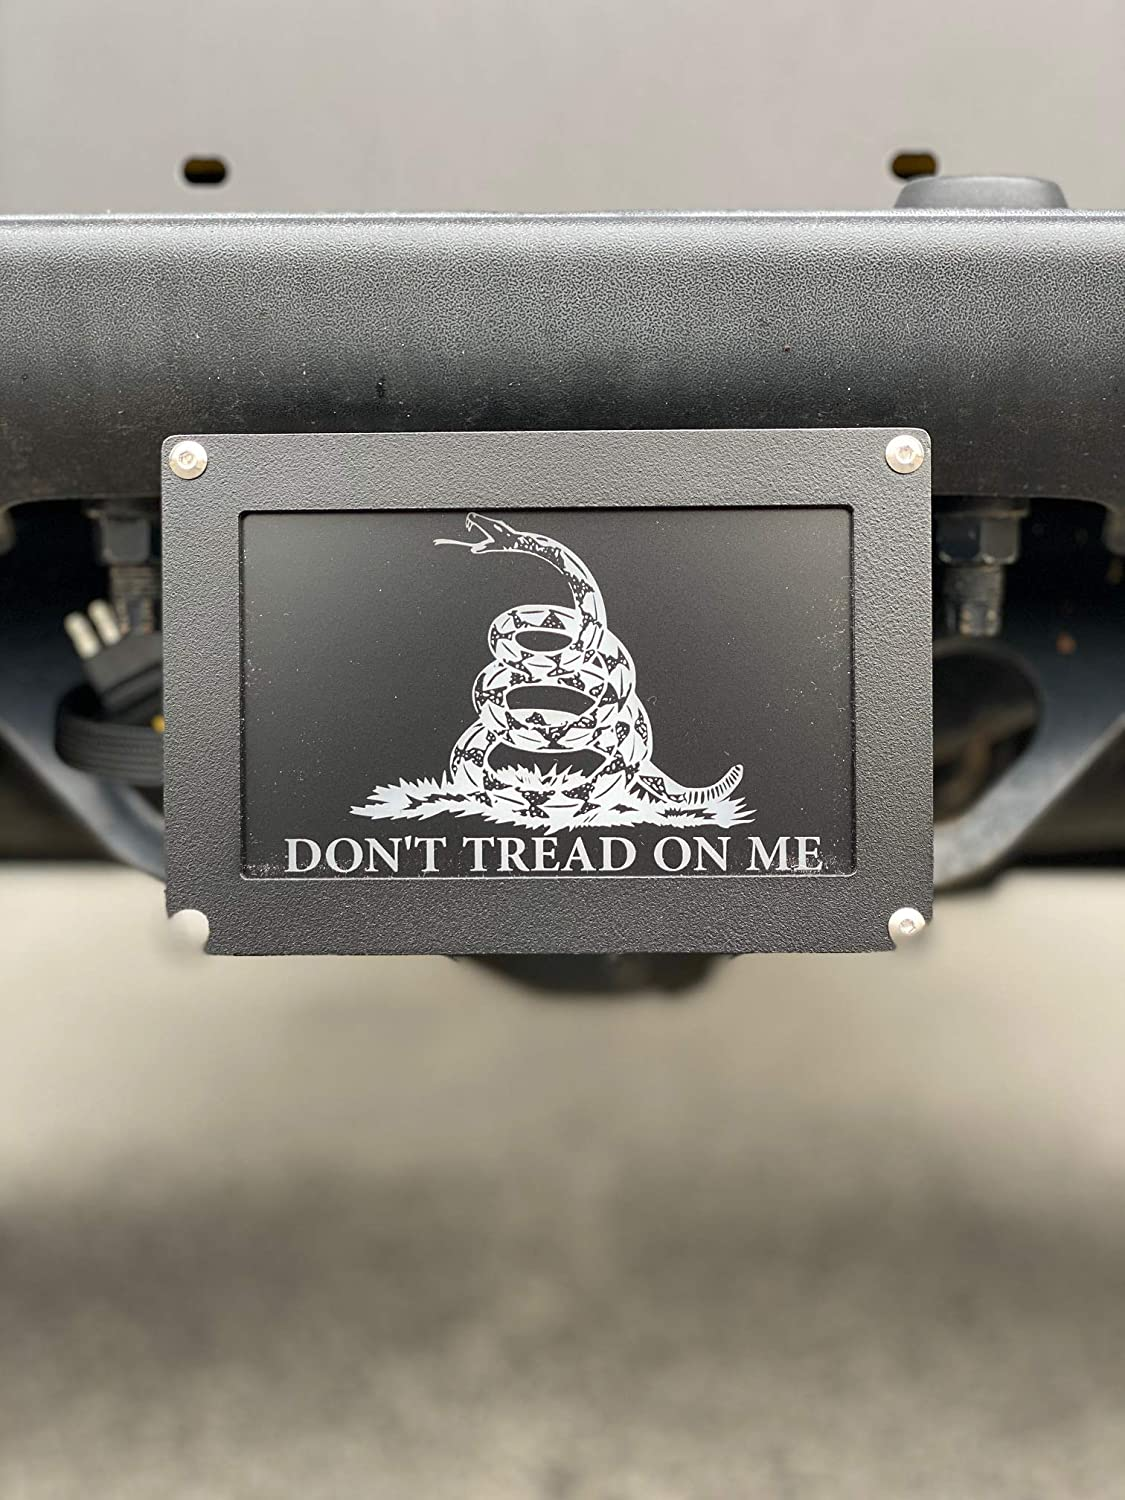 1st Amendment Hitch Covers Interchangeable Flag LED Hitch Cover Including American Flag and Dont Tread on Me Snake Made in The USA